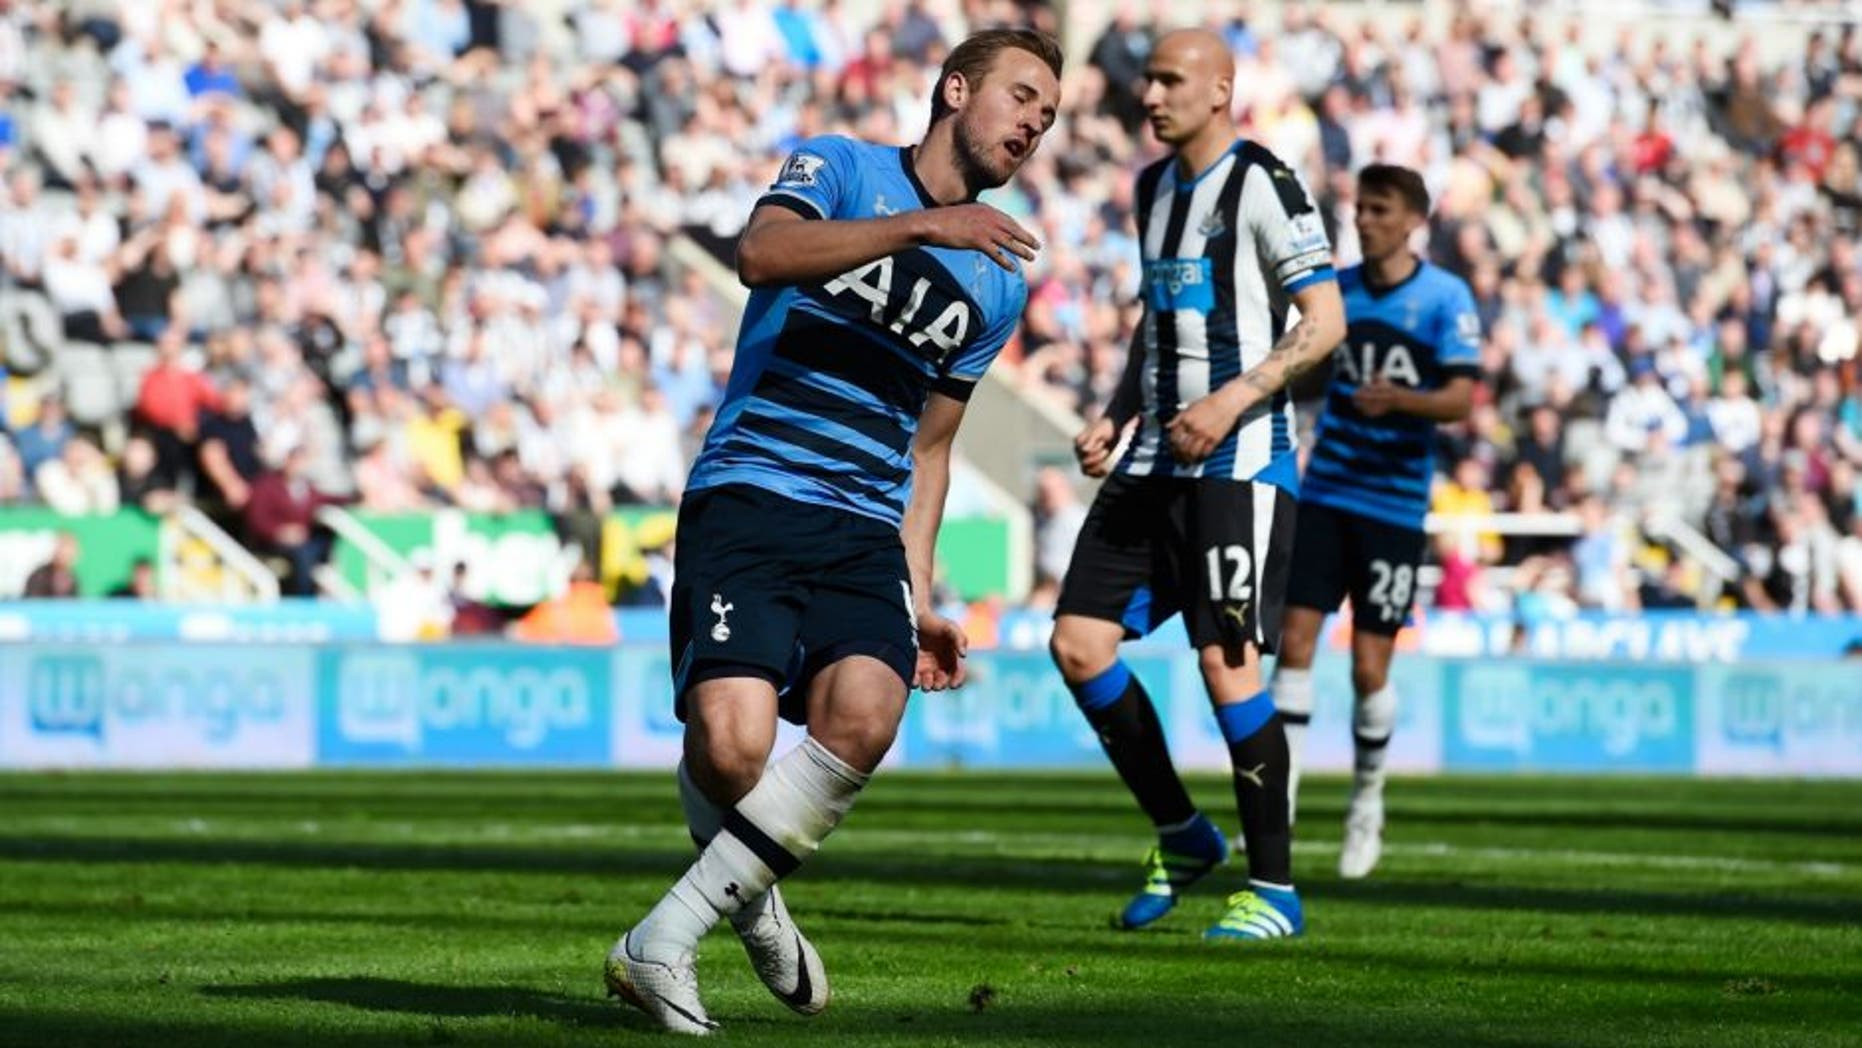 during the Barclays Premier League match between Newcastle United and Tottenham Hotspur at St James' Park on May 15, 2016 in Newcastle, England.